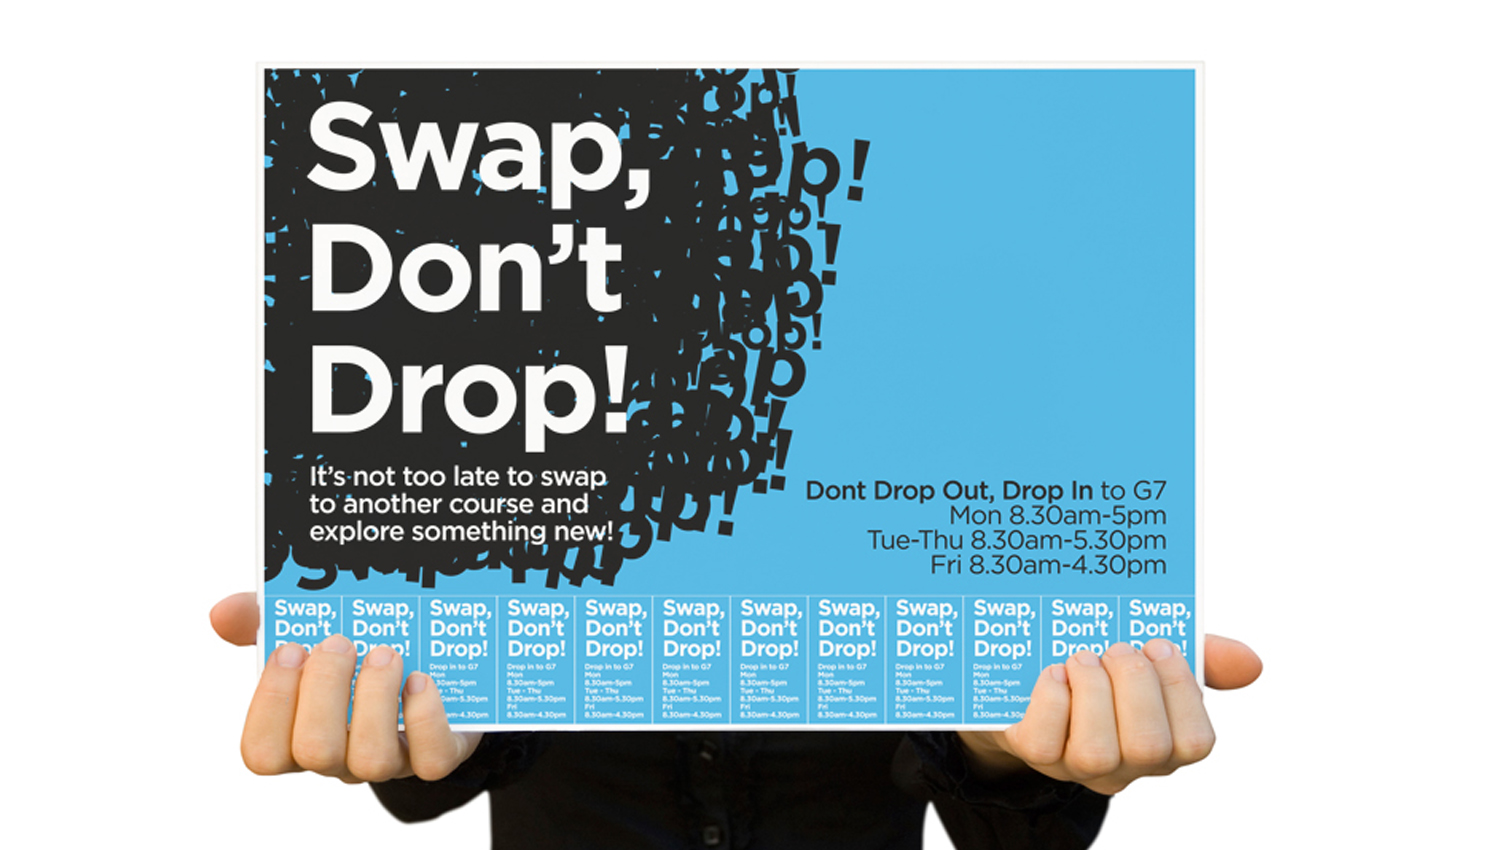 Swap Don't Drop Campaign